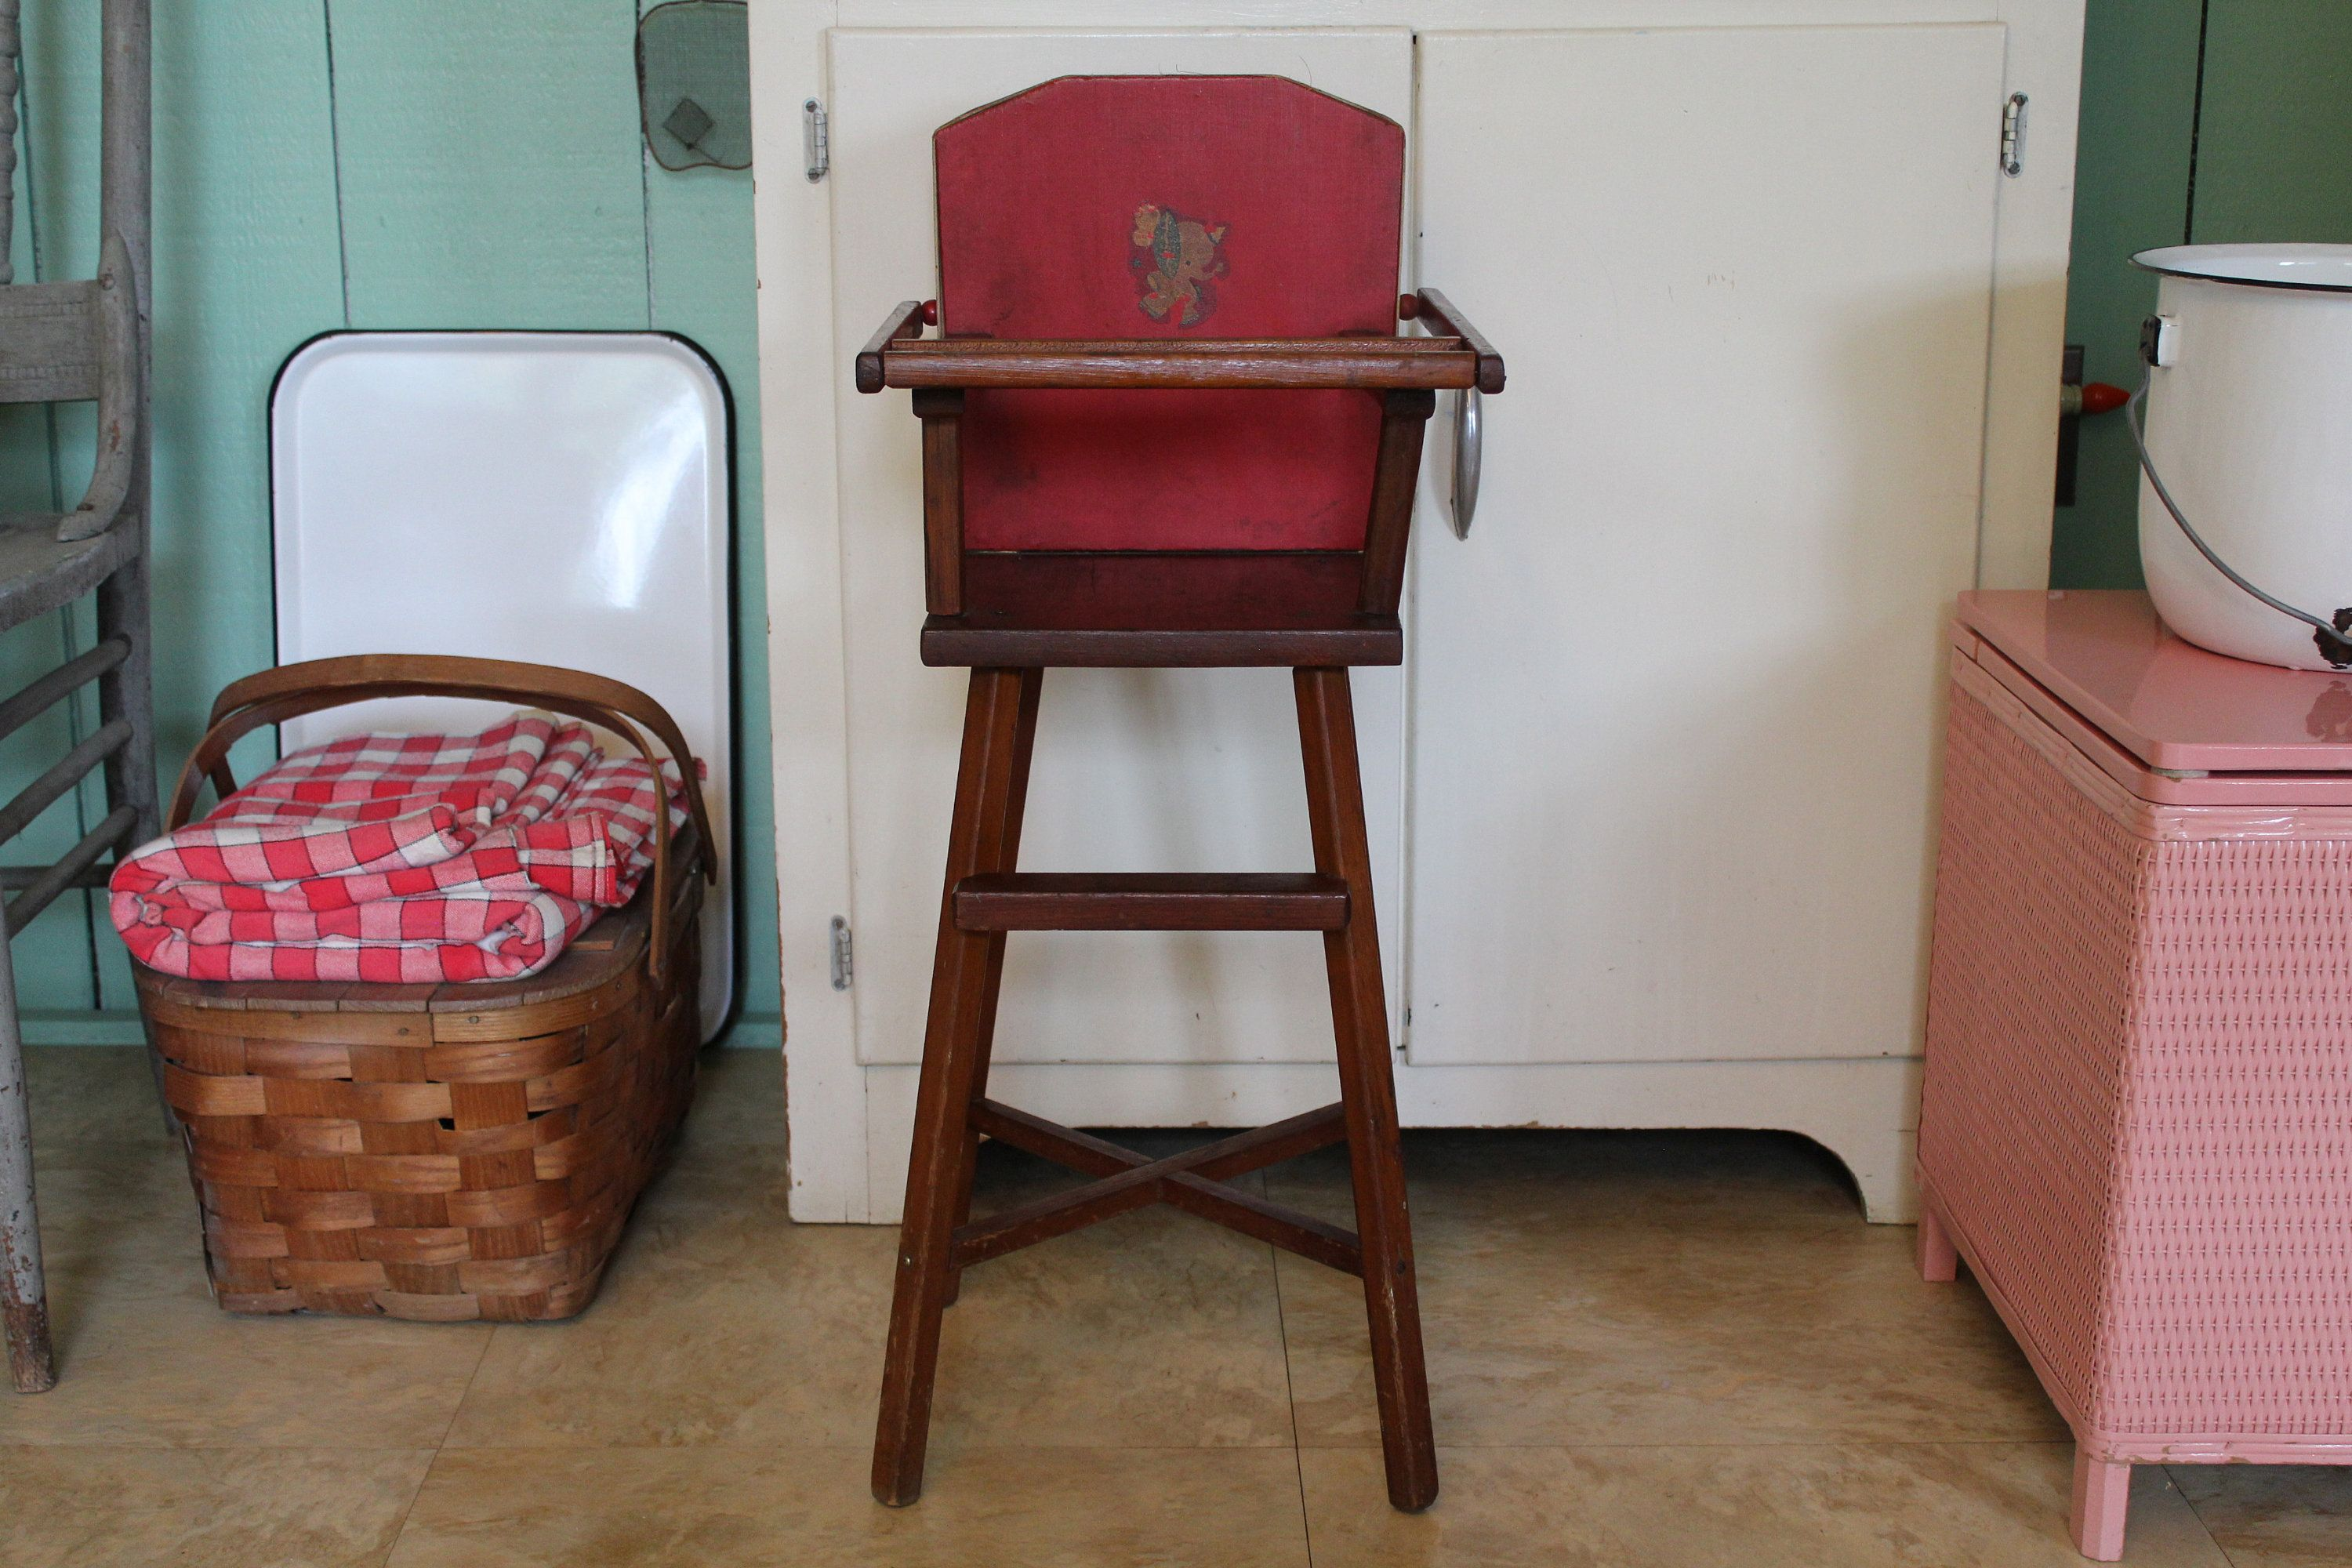 Vintage Doll High Chair 48 Red Toy High Chair Pla Doll High